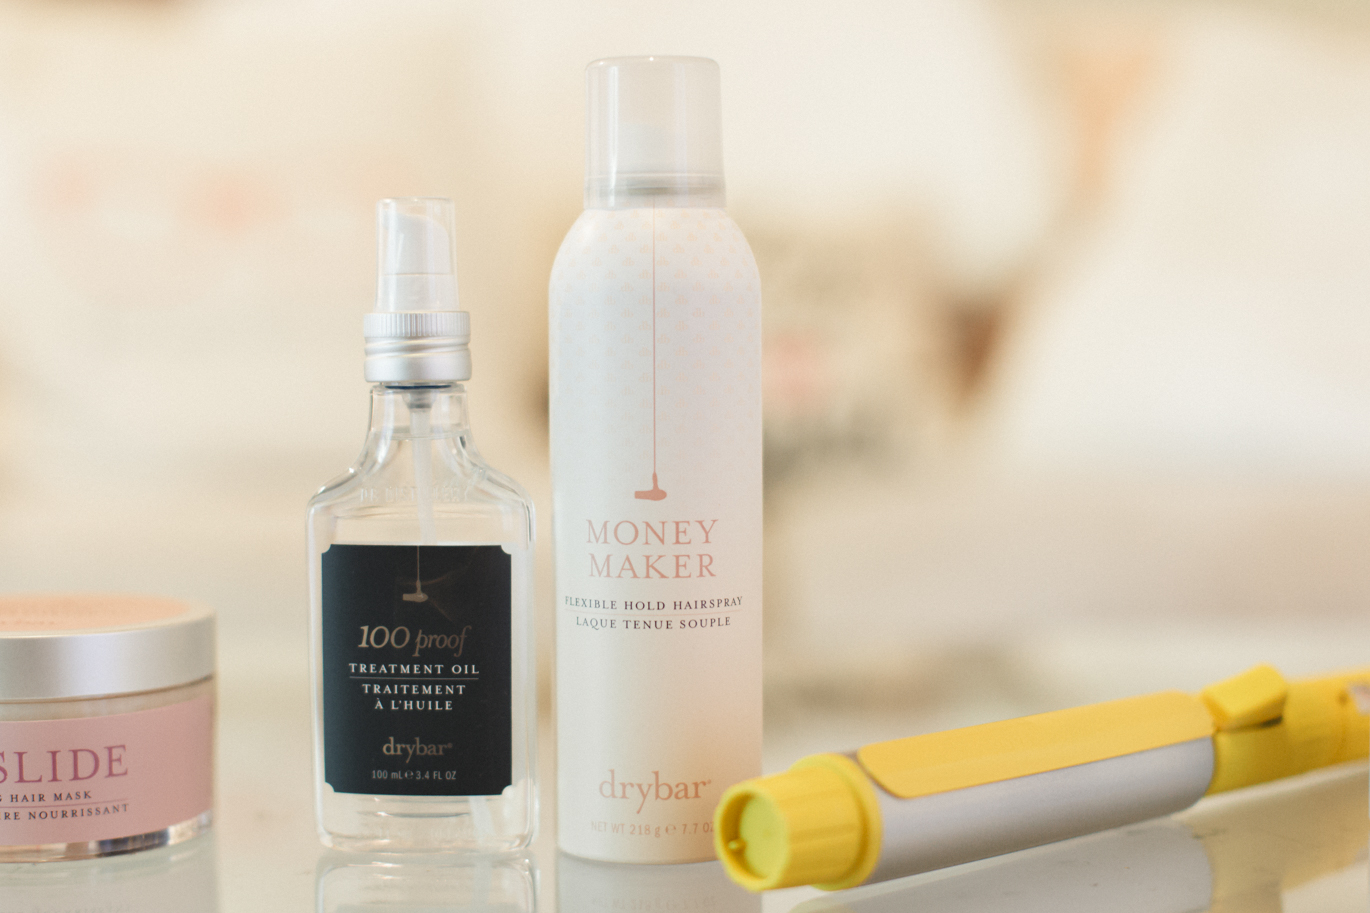 drybar Money Maker hairspray